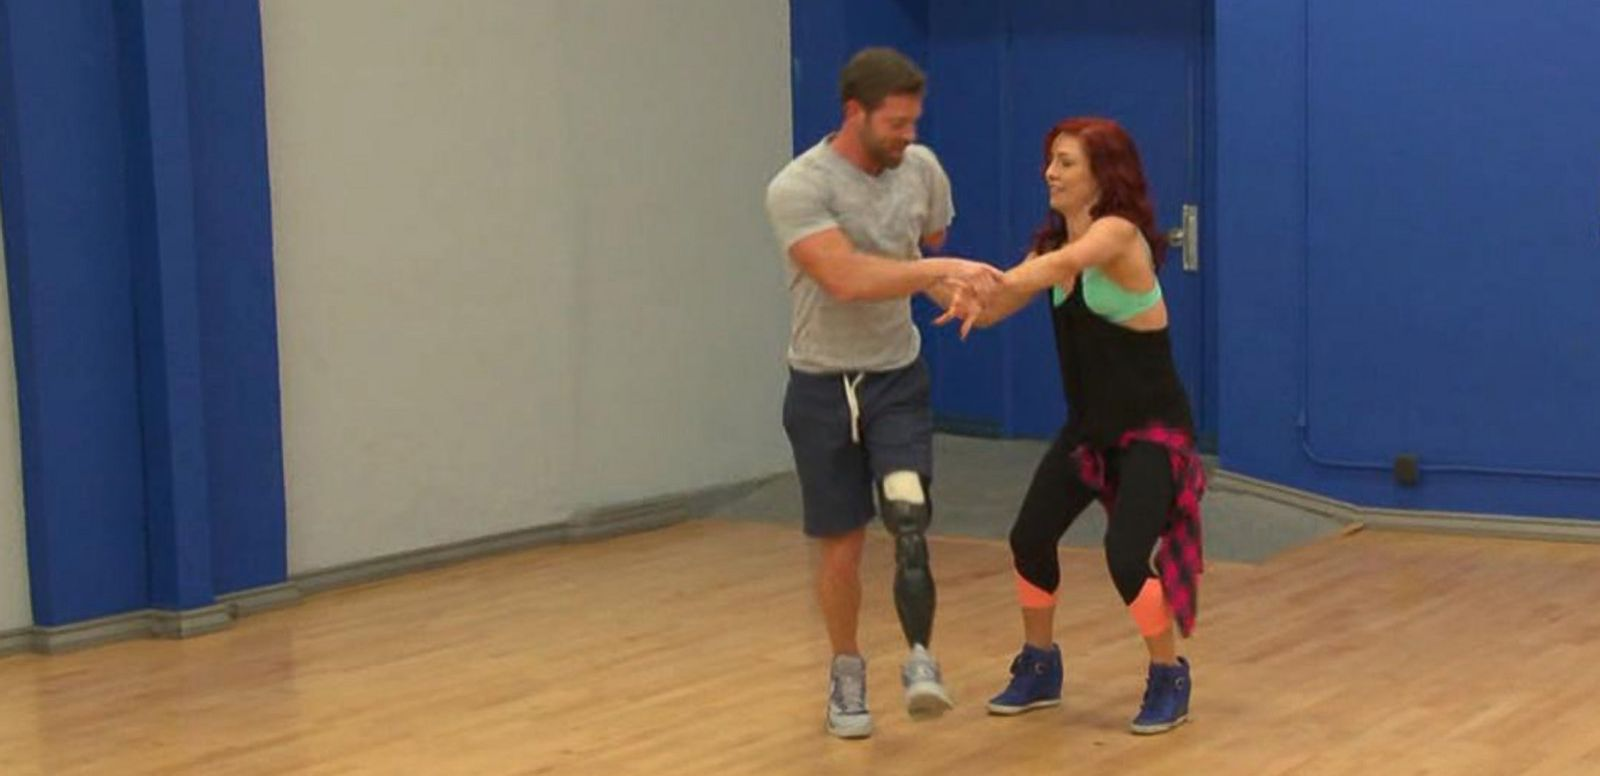 VIDEO: 'Dancing With the Stars' Noah Galloway Continues to Inspire